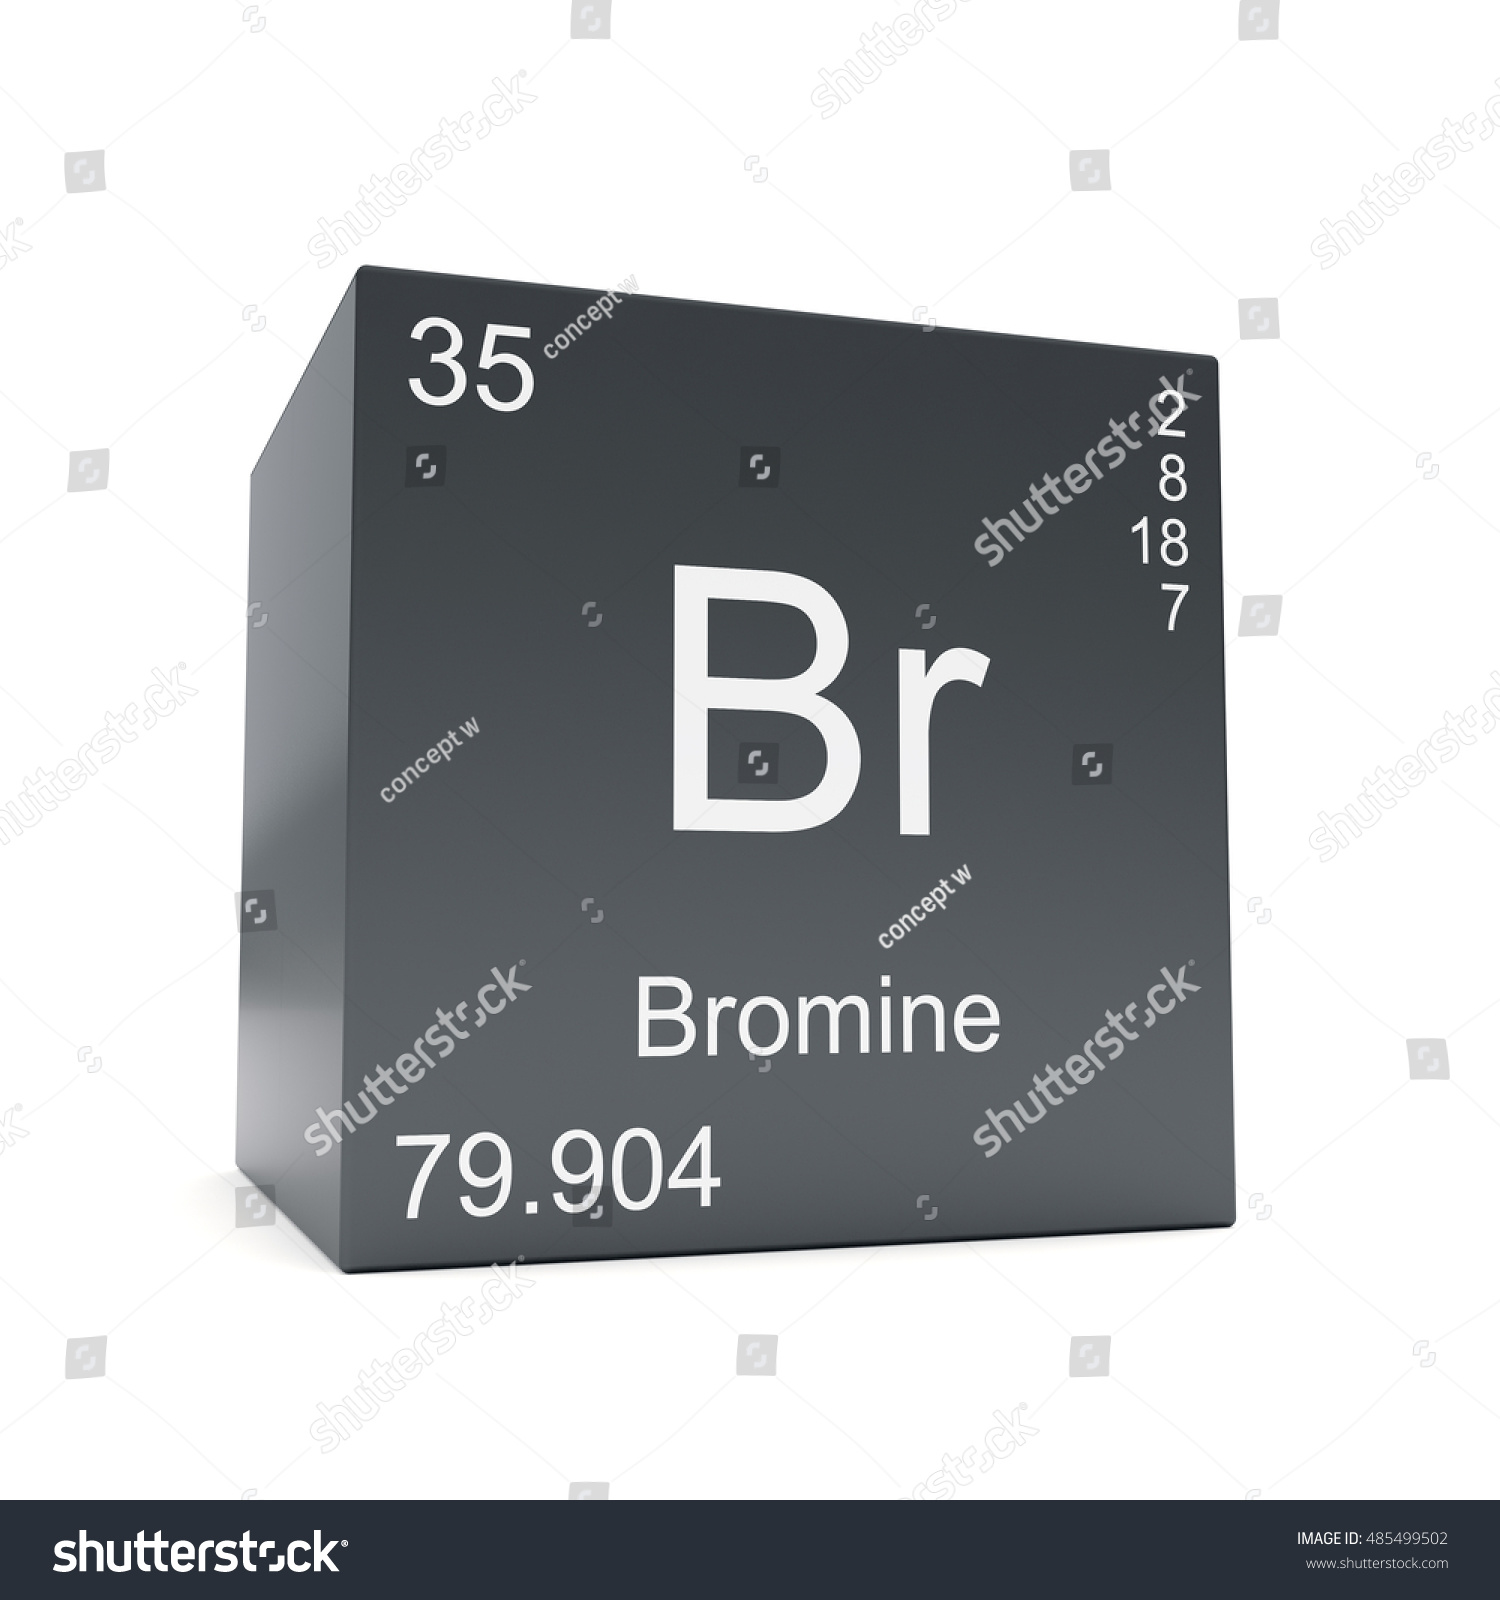 Bromine chemical element symbol periodic table stock illustration bromine chemical element symbol from the periodic table displayed on black cube 3d render biocorpaavc